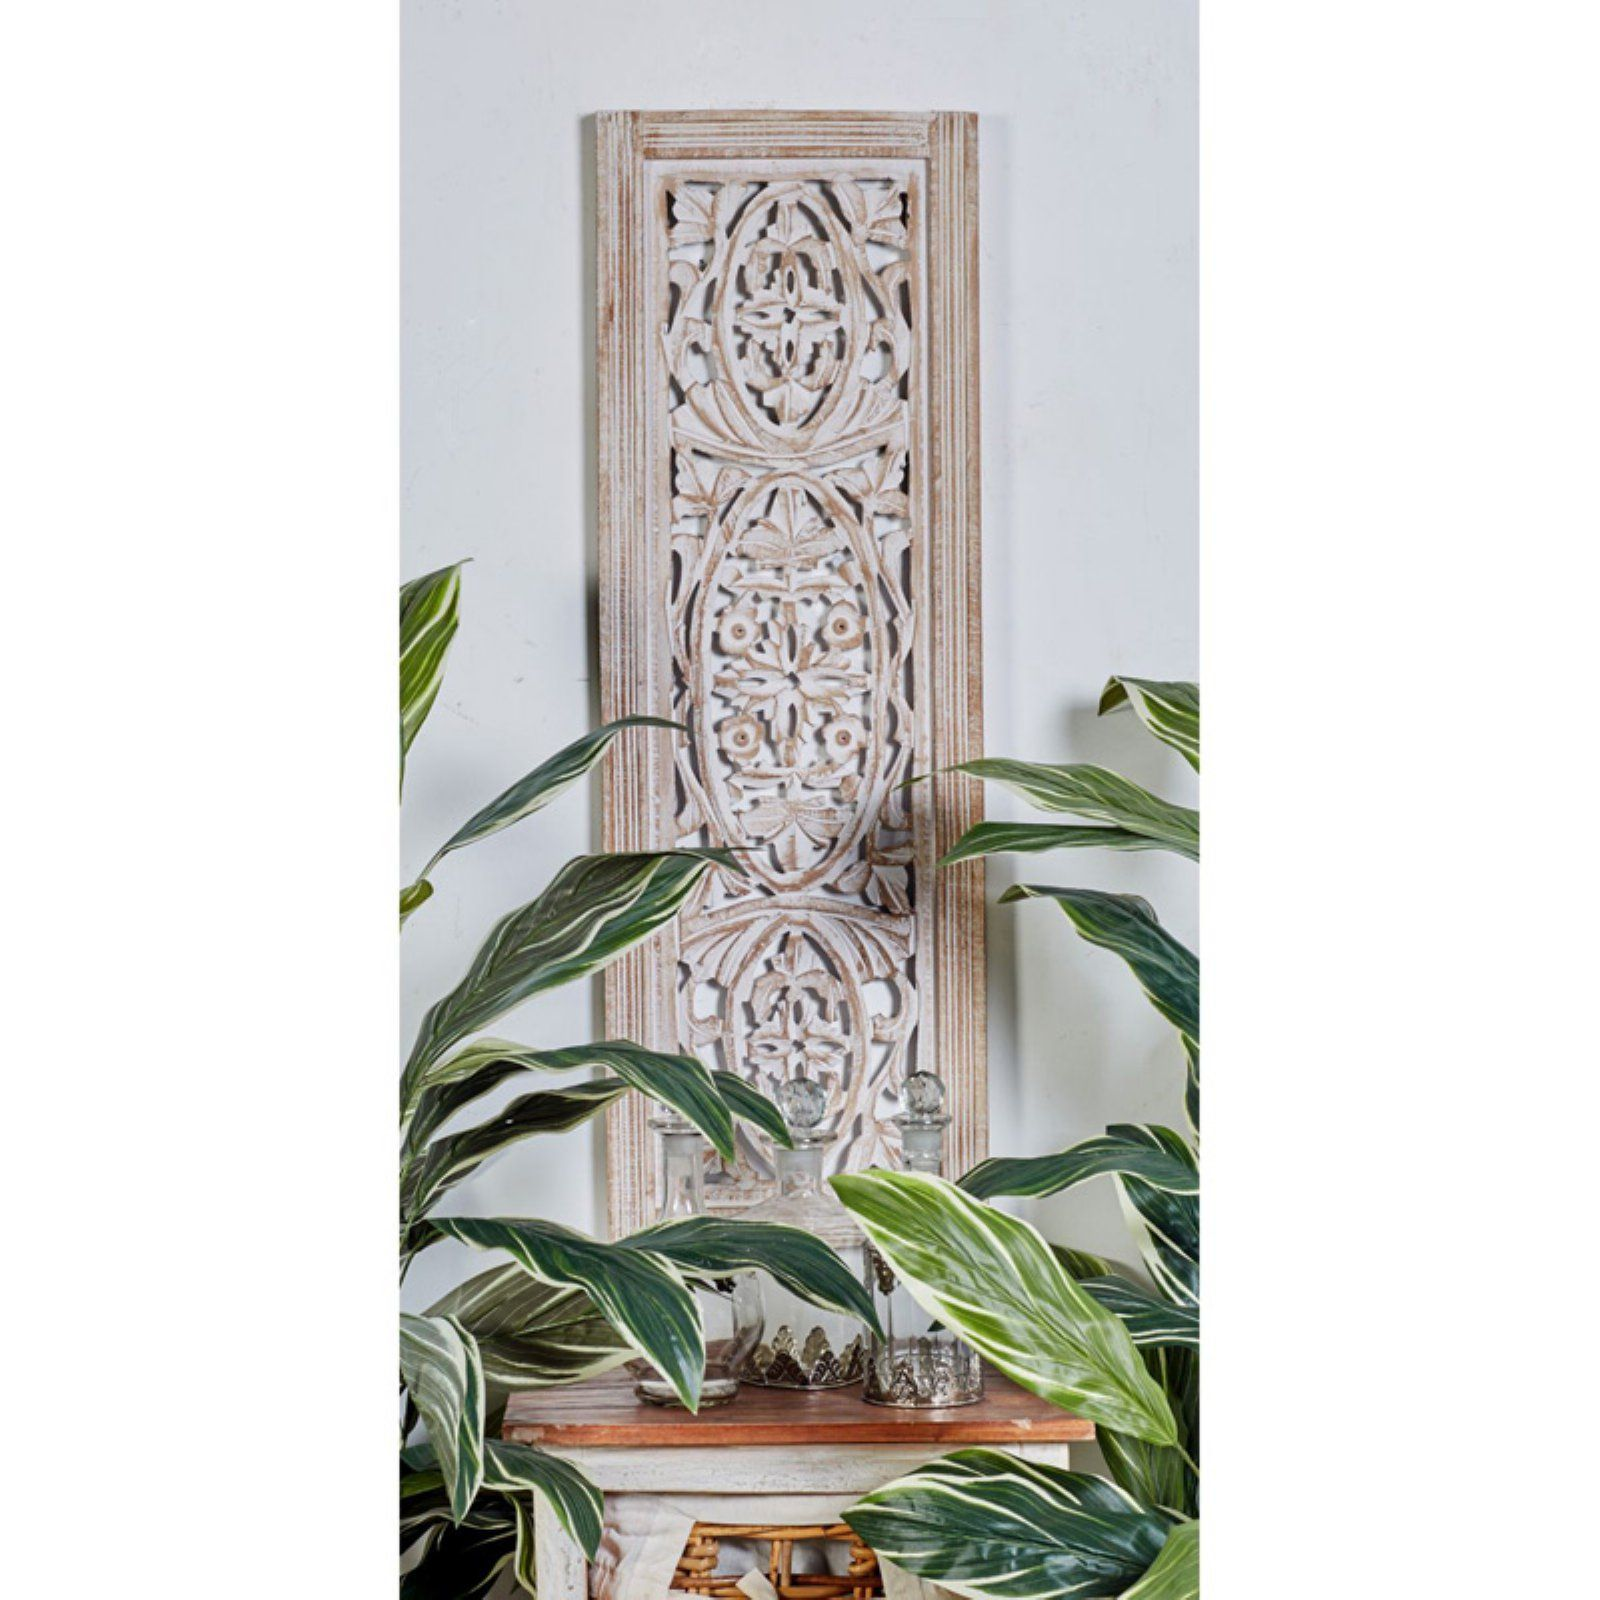 Decmode 12w X 36h In Antique White Wood Botanical Scrollwork Wall